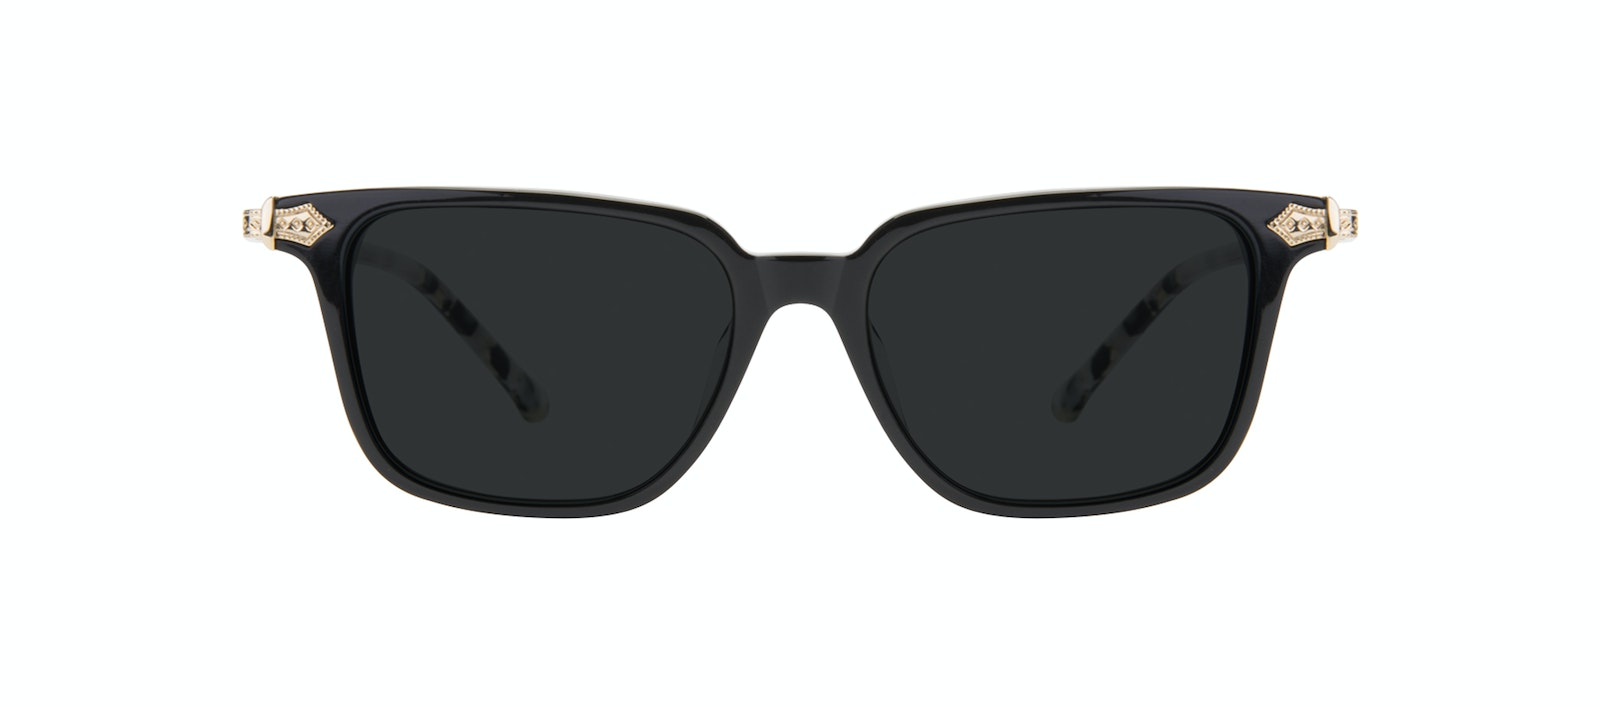 Affordable Fashion Glasses Square Sunglasses Women Twinkle Onyx Marble Front